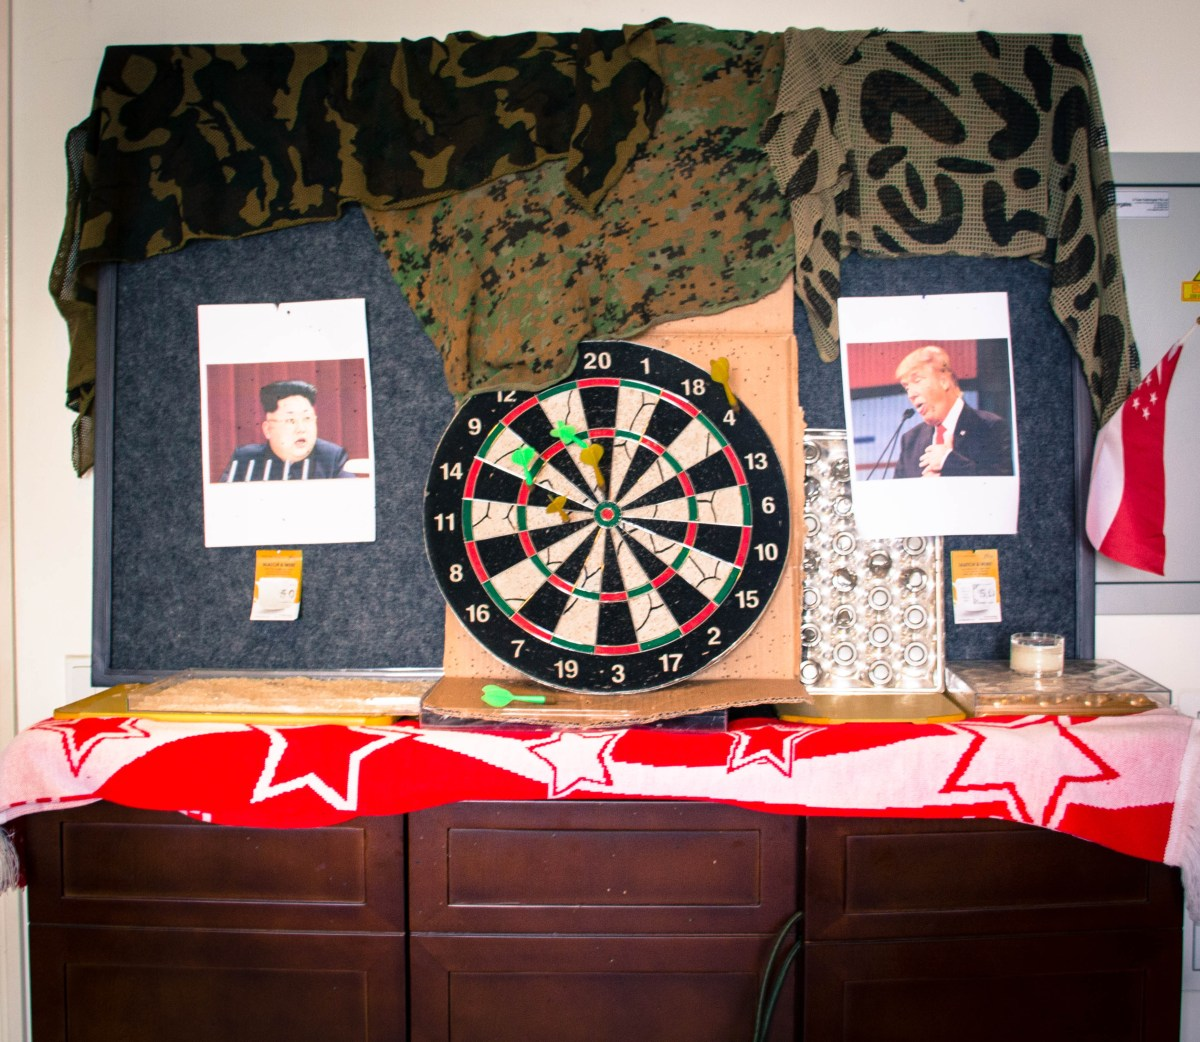 The suite's dartboard is adorned with pictures of Donald Trump and Kim Jong Un.